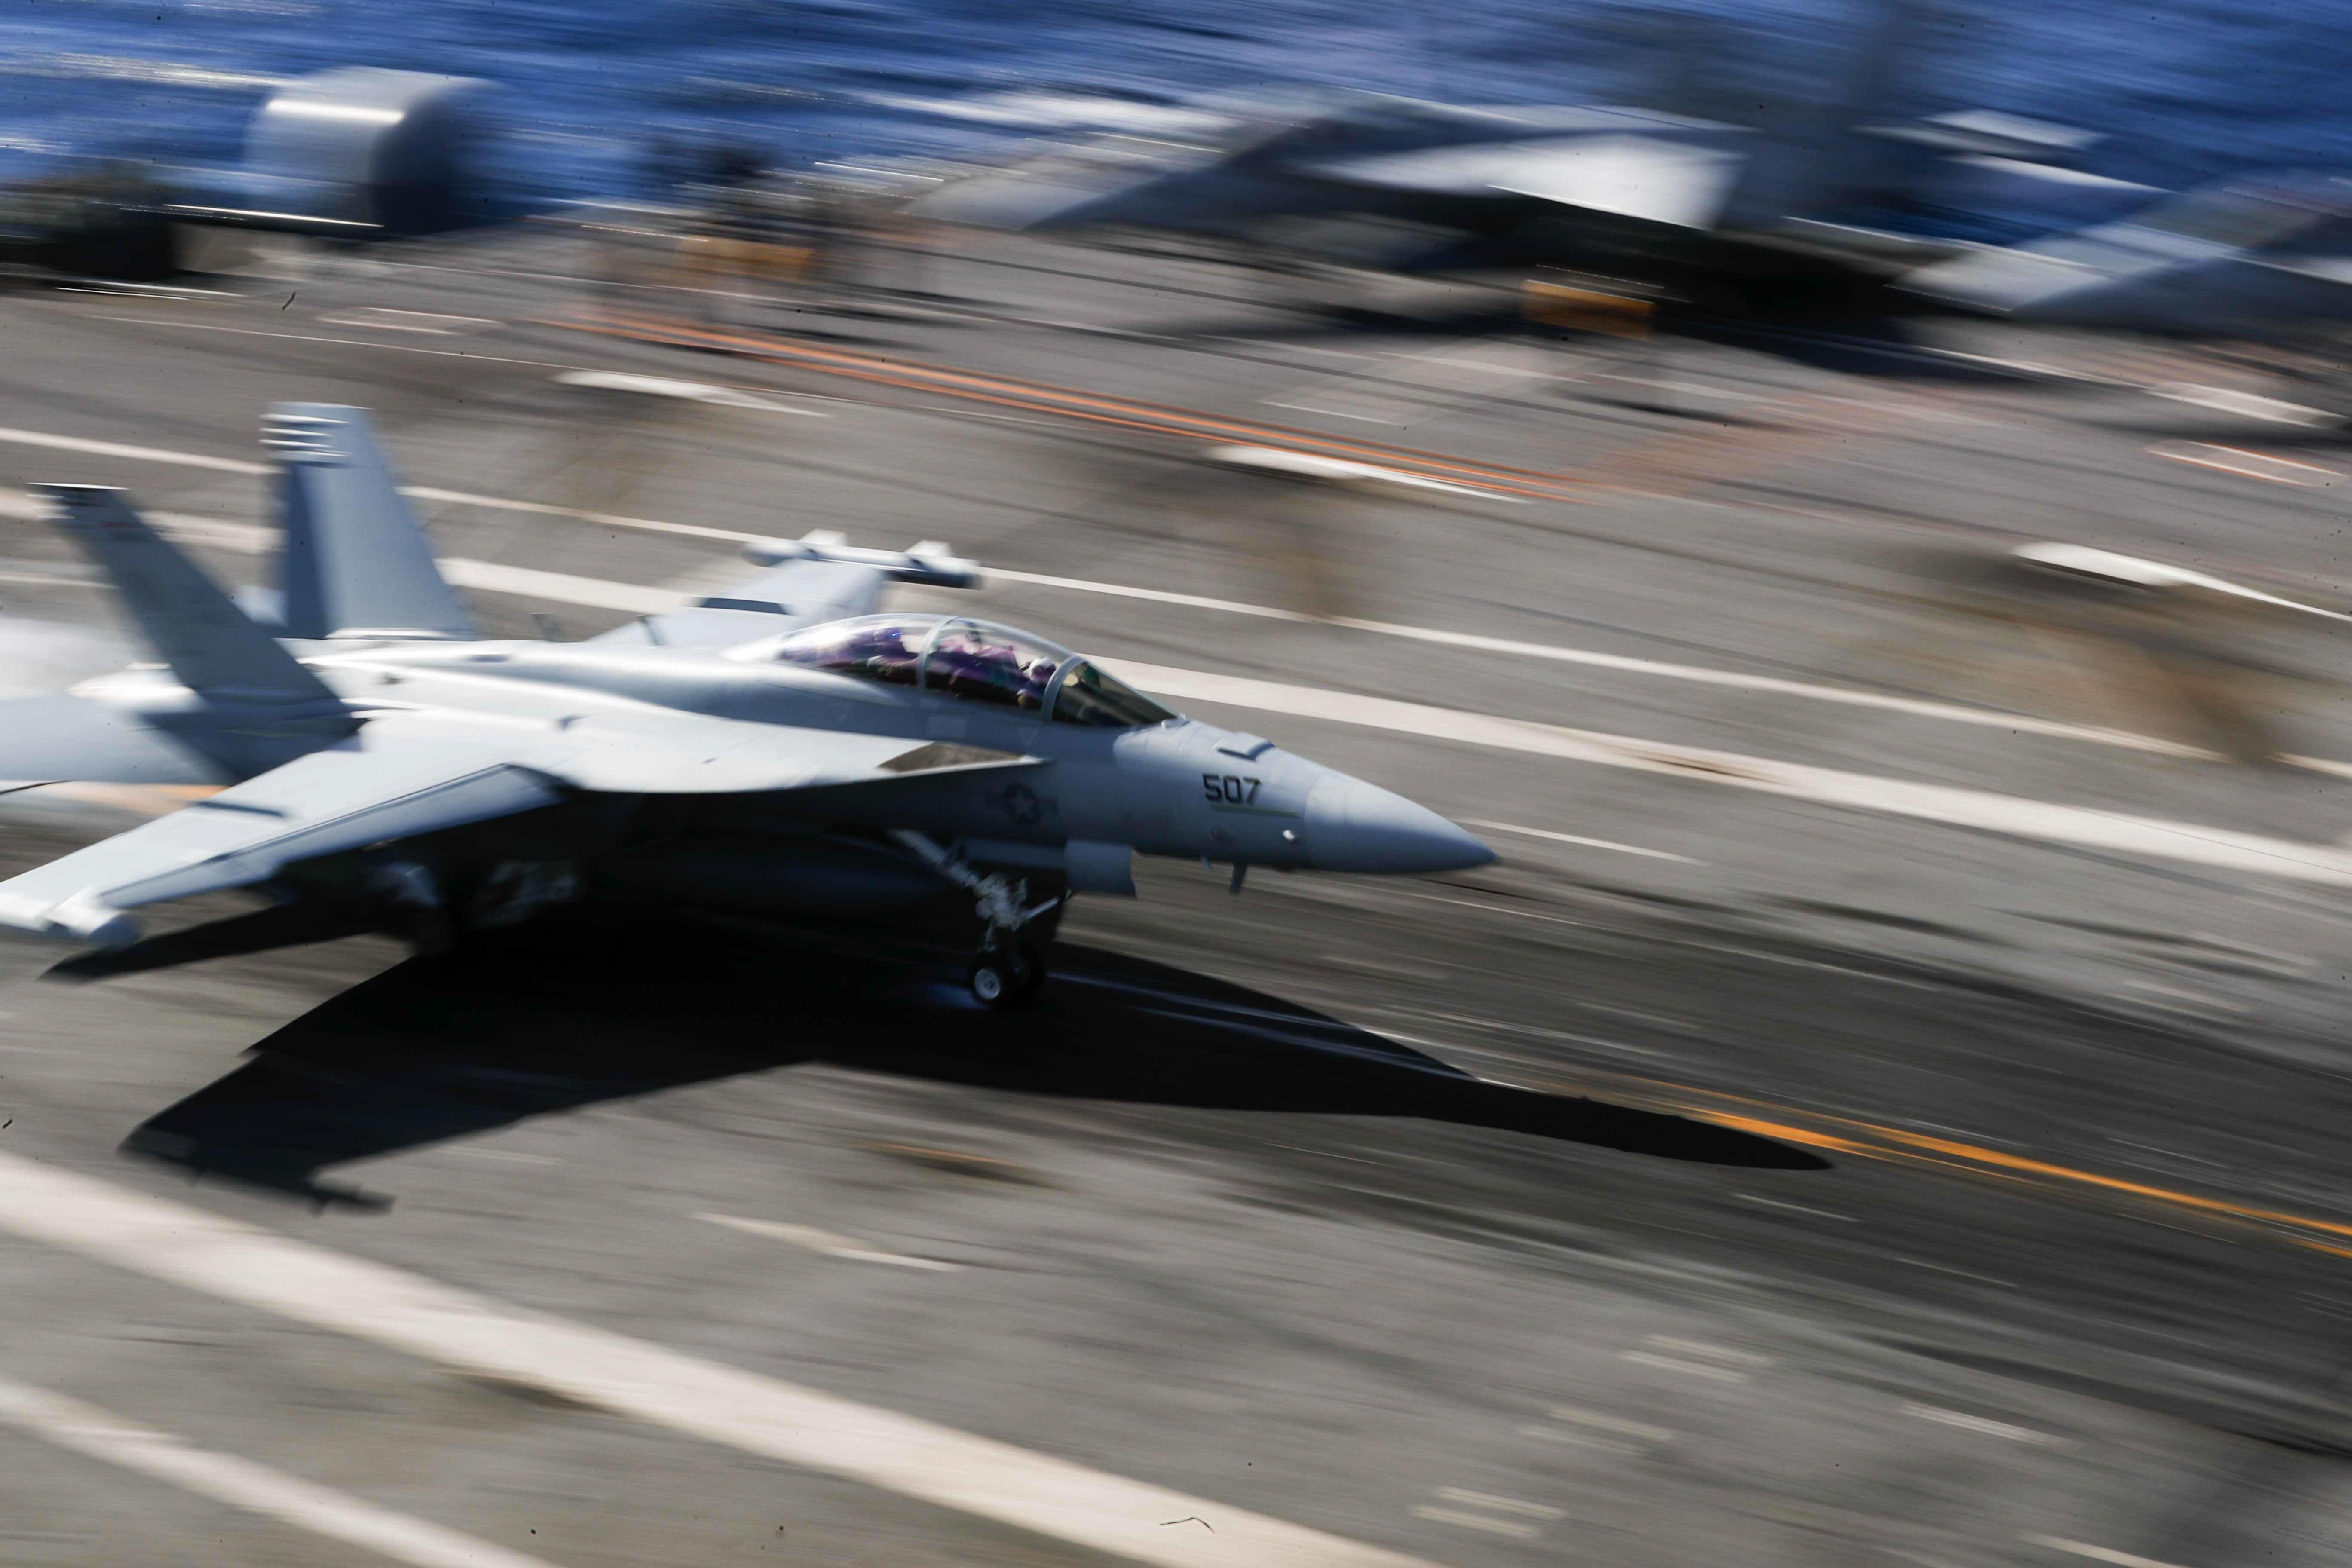 First Super Hornet Inducted Into Service Life Extension